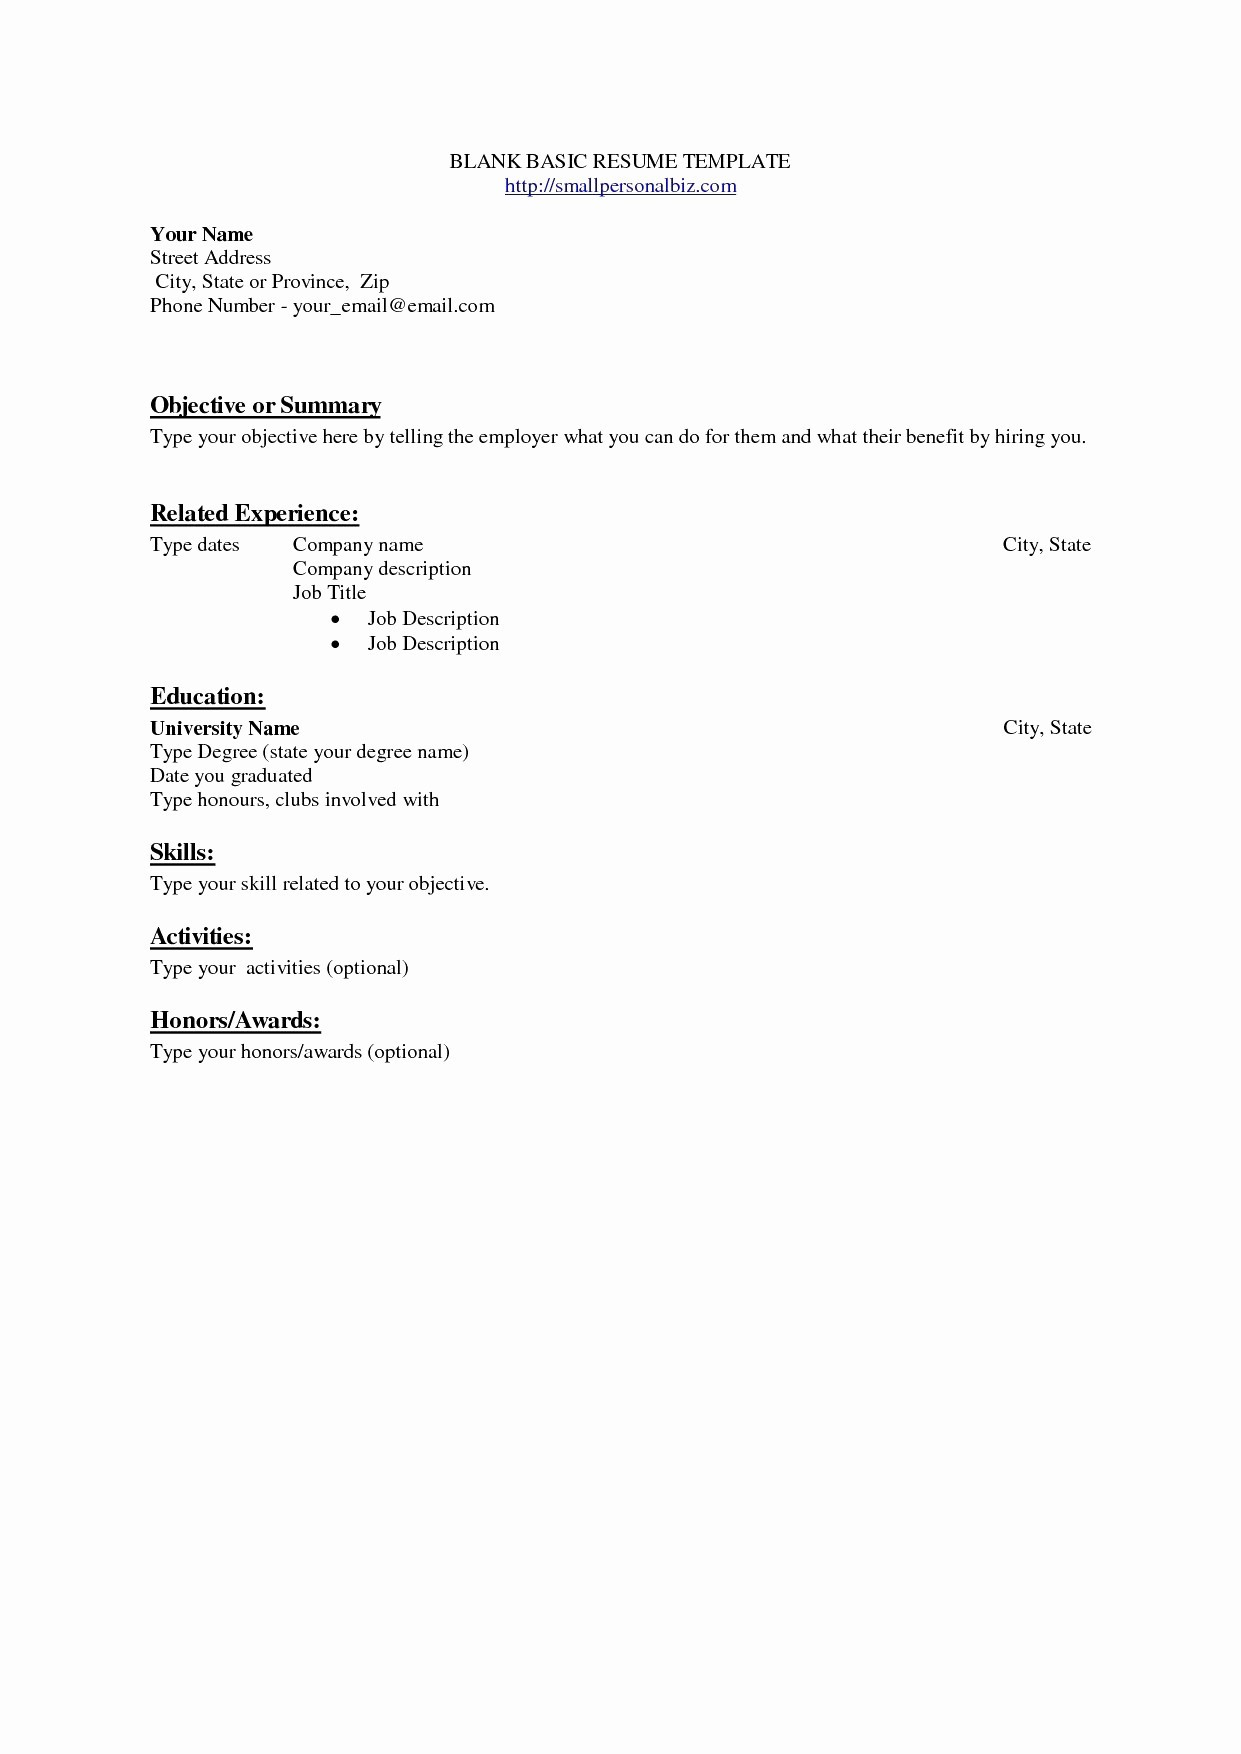 12 upload resume for job ideas